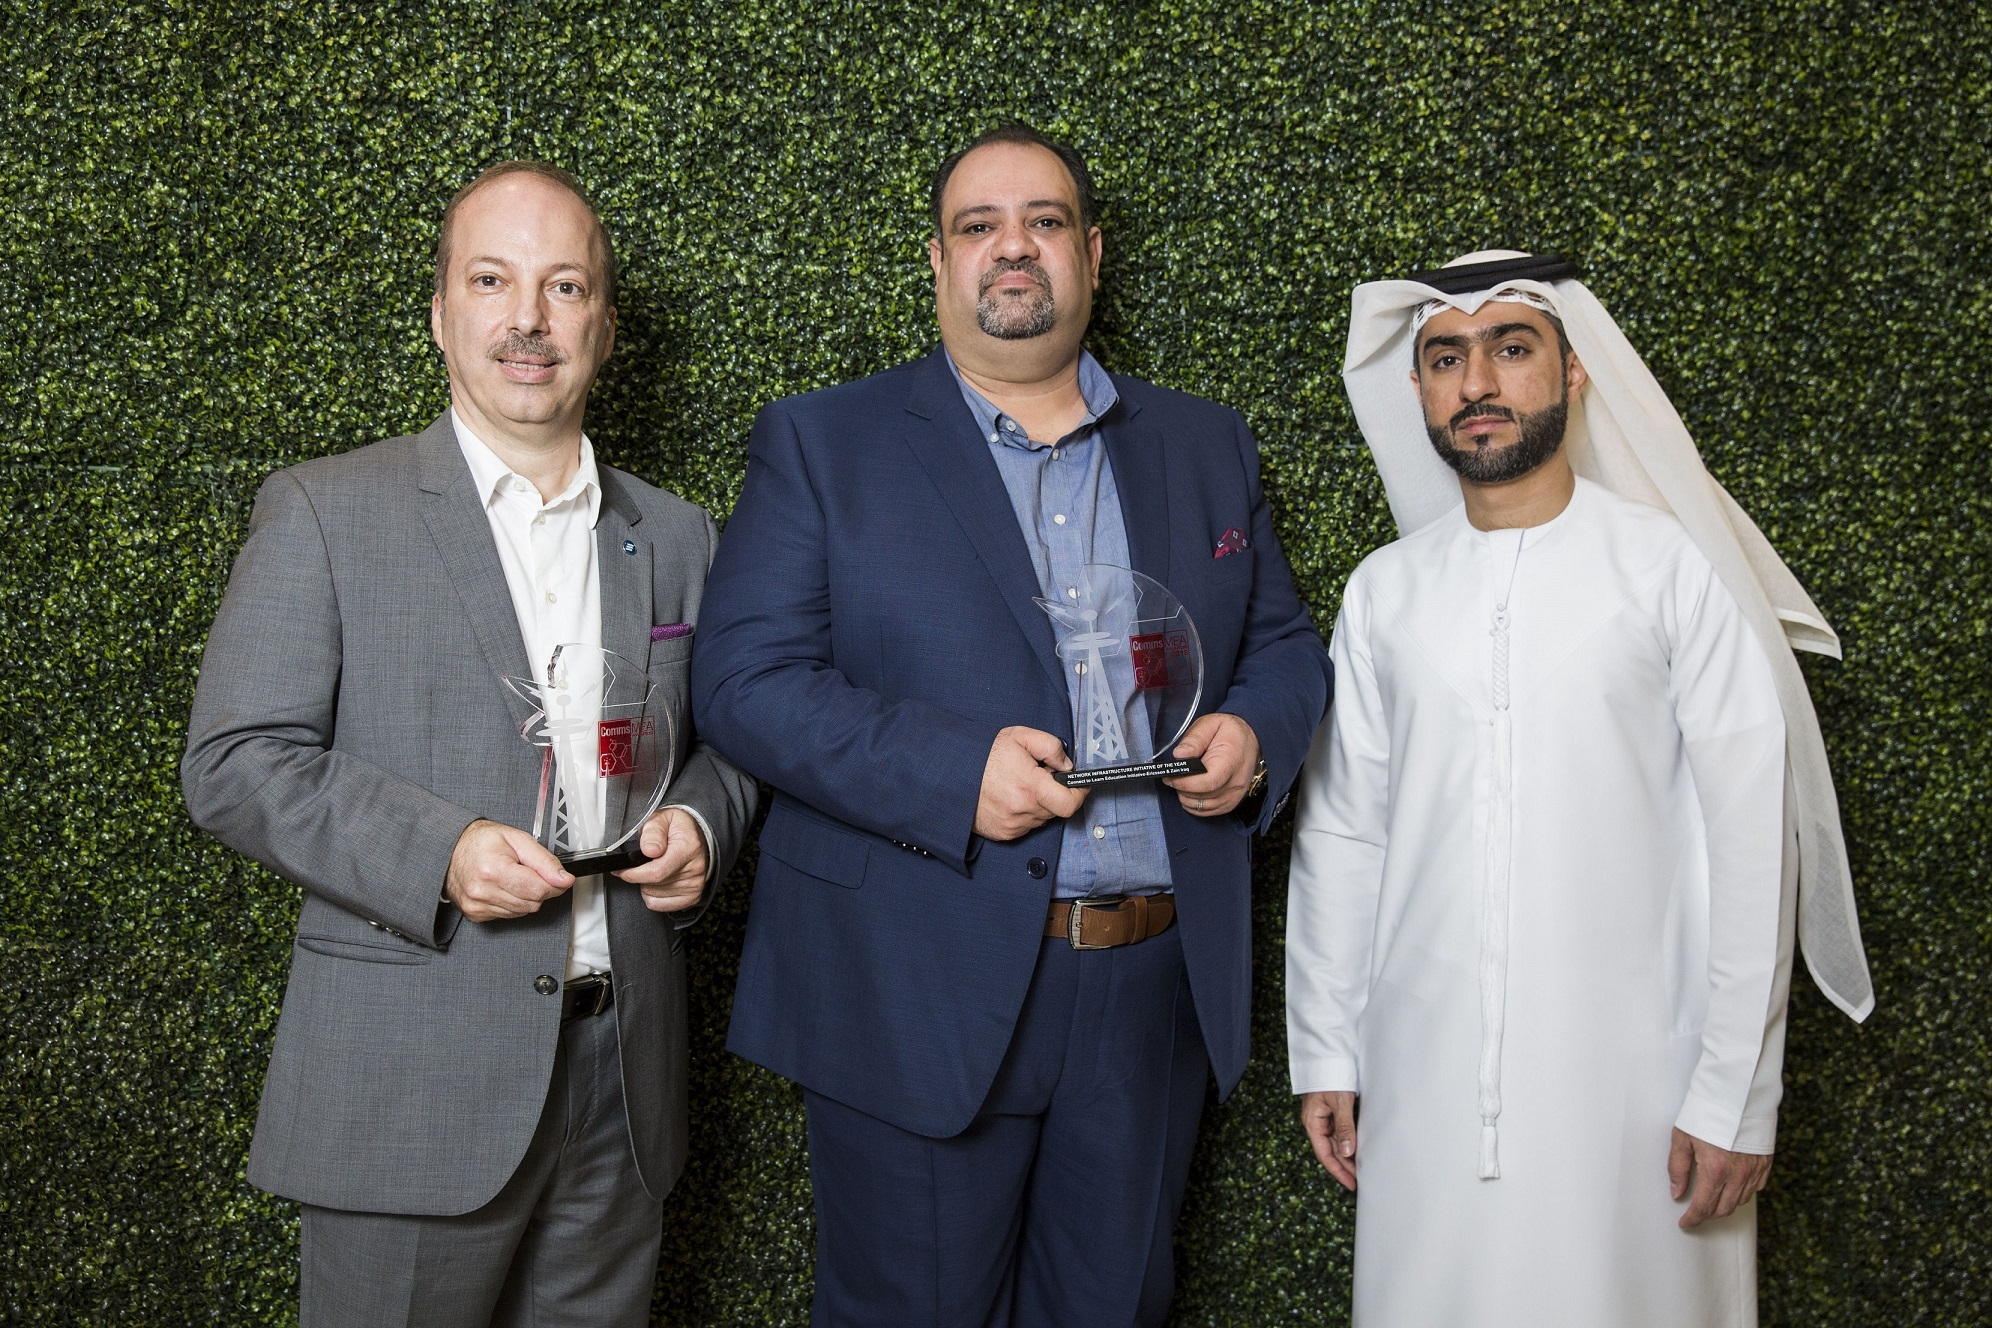 winners  Comms MEA 2018 Grosvenor House  Dubai, United Arab Emirates, November 14, 2018 (Photo by Aasiya Jagadeesh/ITP Images)